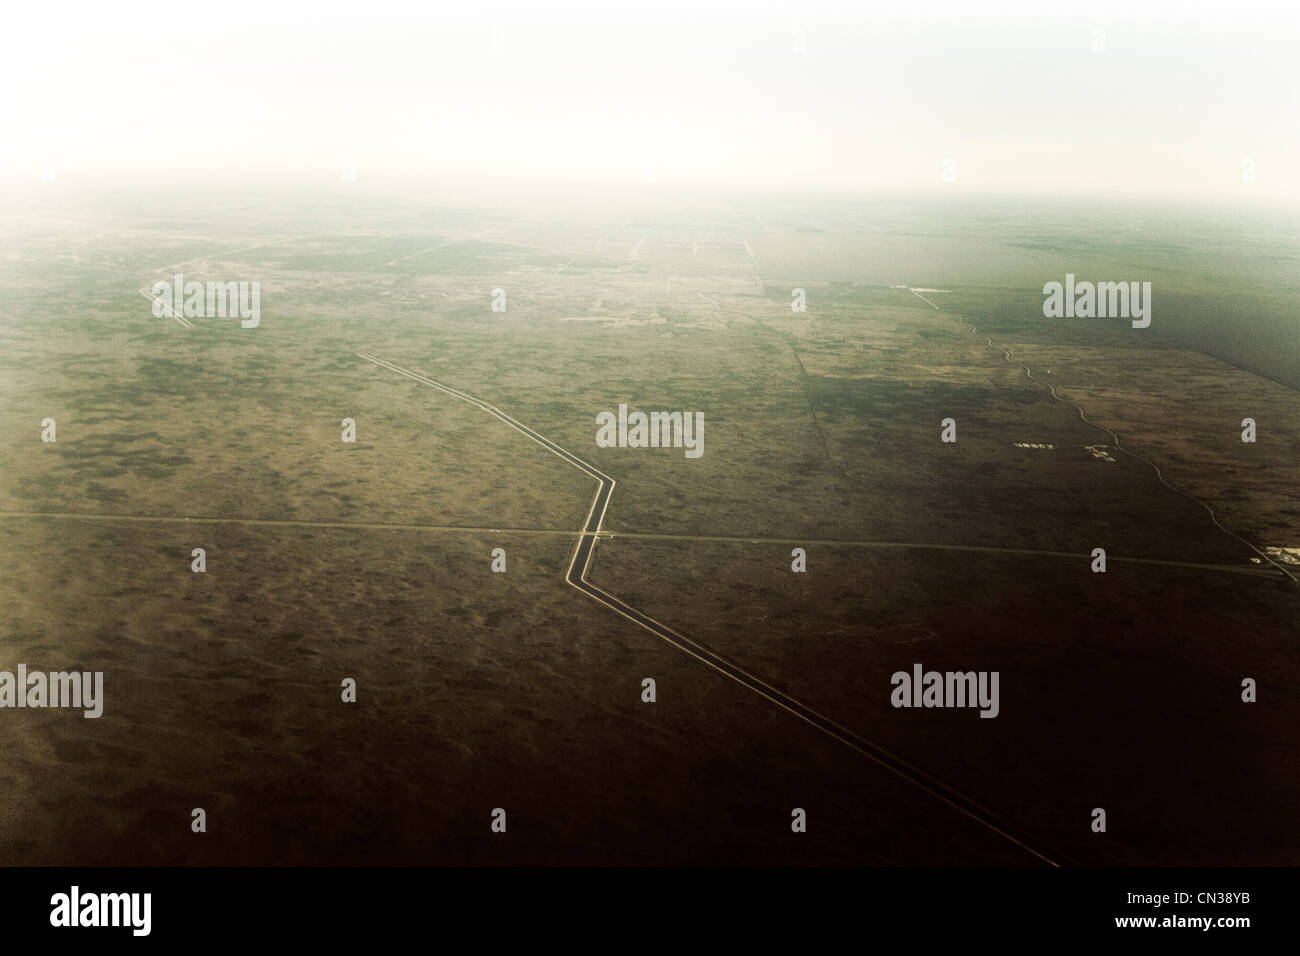 Landscape from sky Fort Lauderdale, Florida, USA Stock Photo